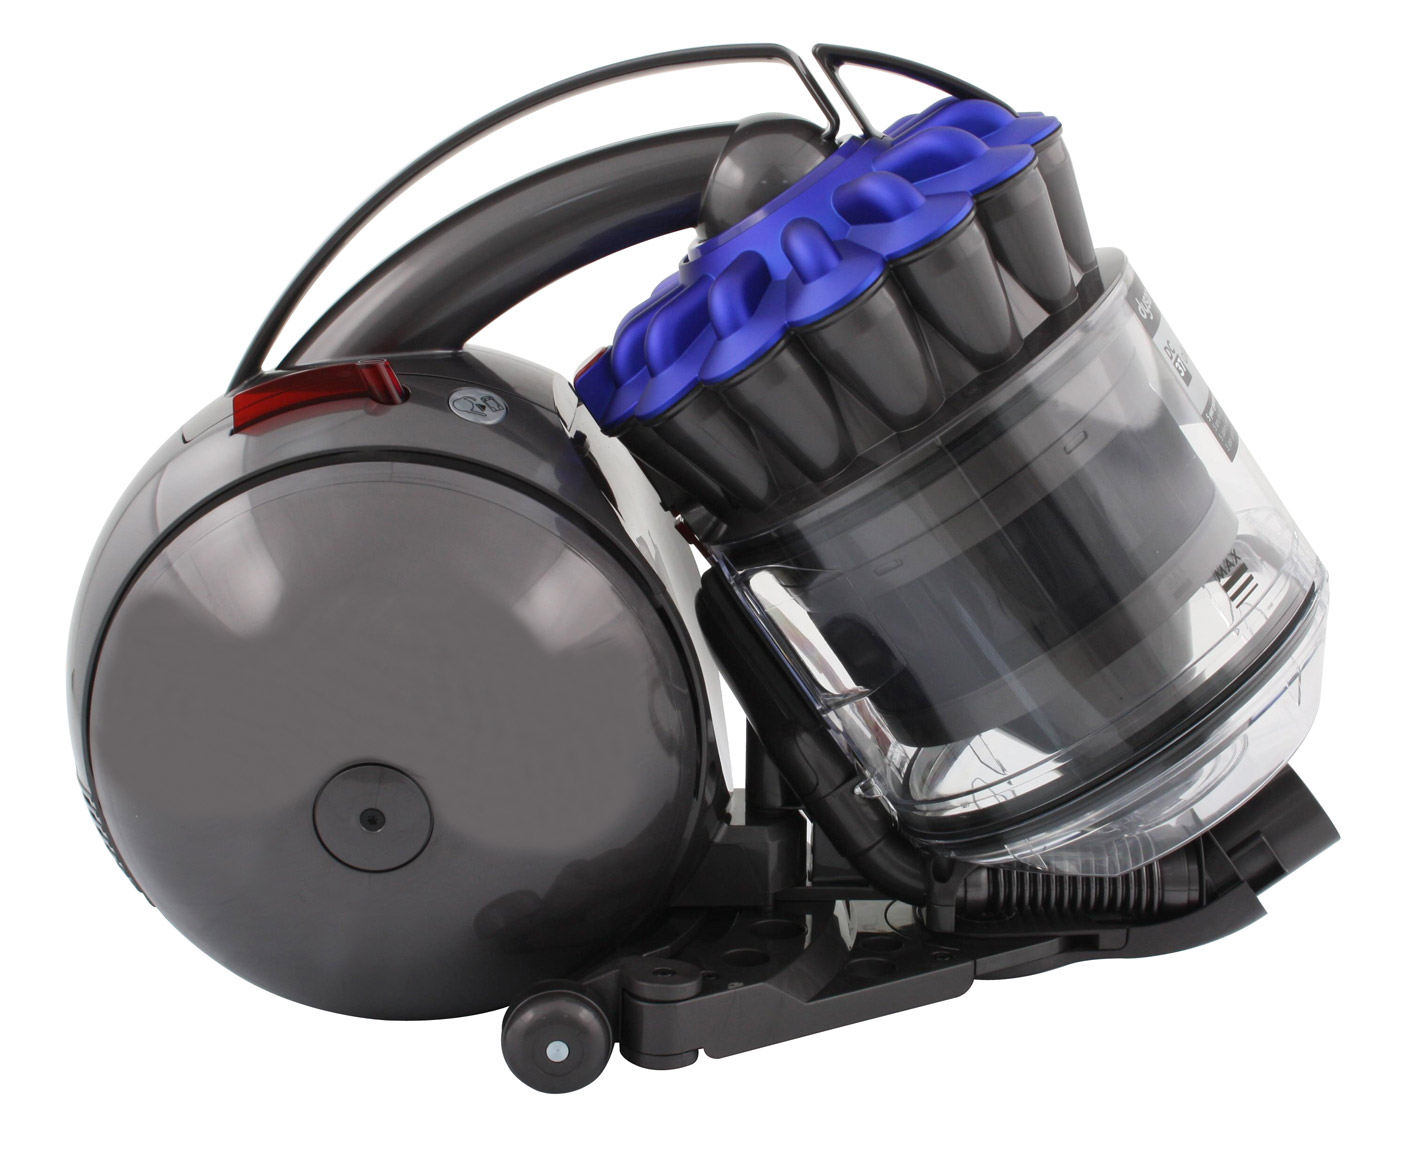 prix aspirateur dyson. Black Bedroom Furniture Sets. Home Design Ideas